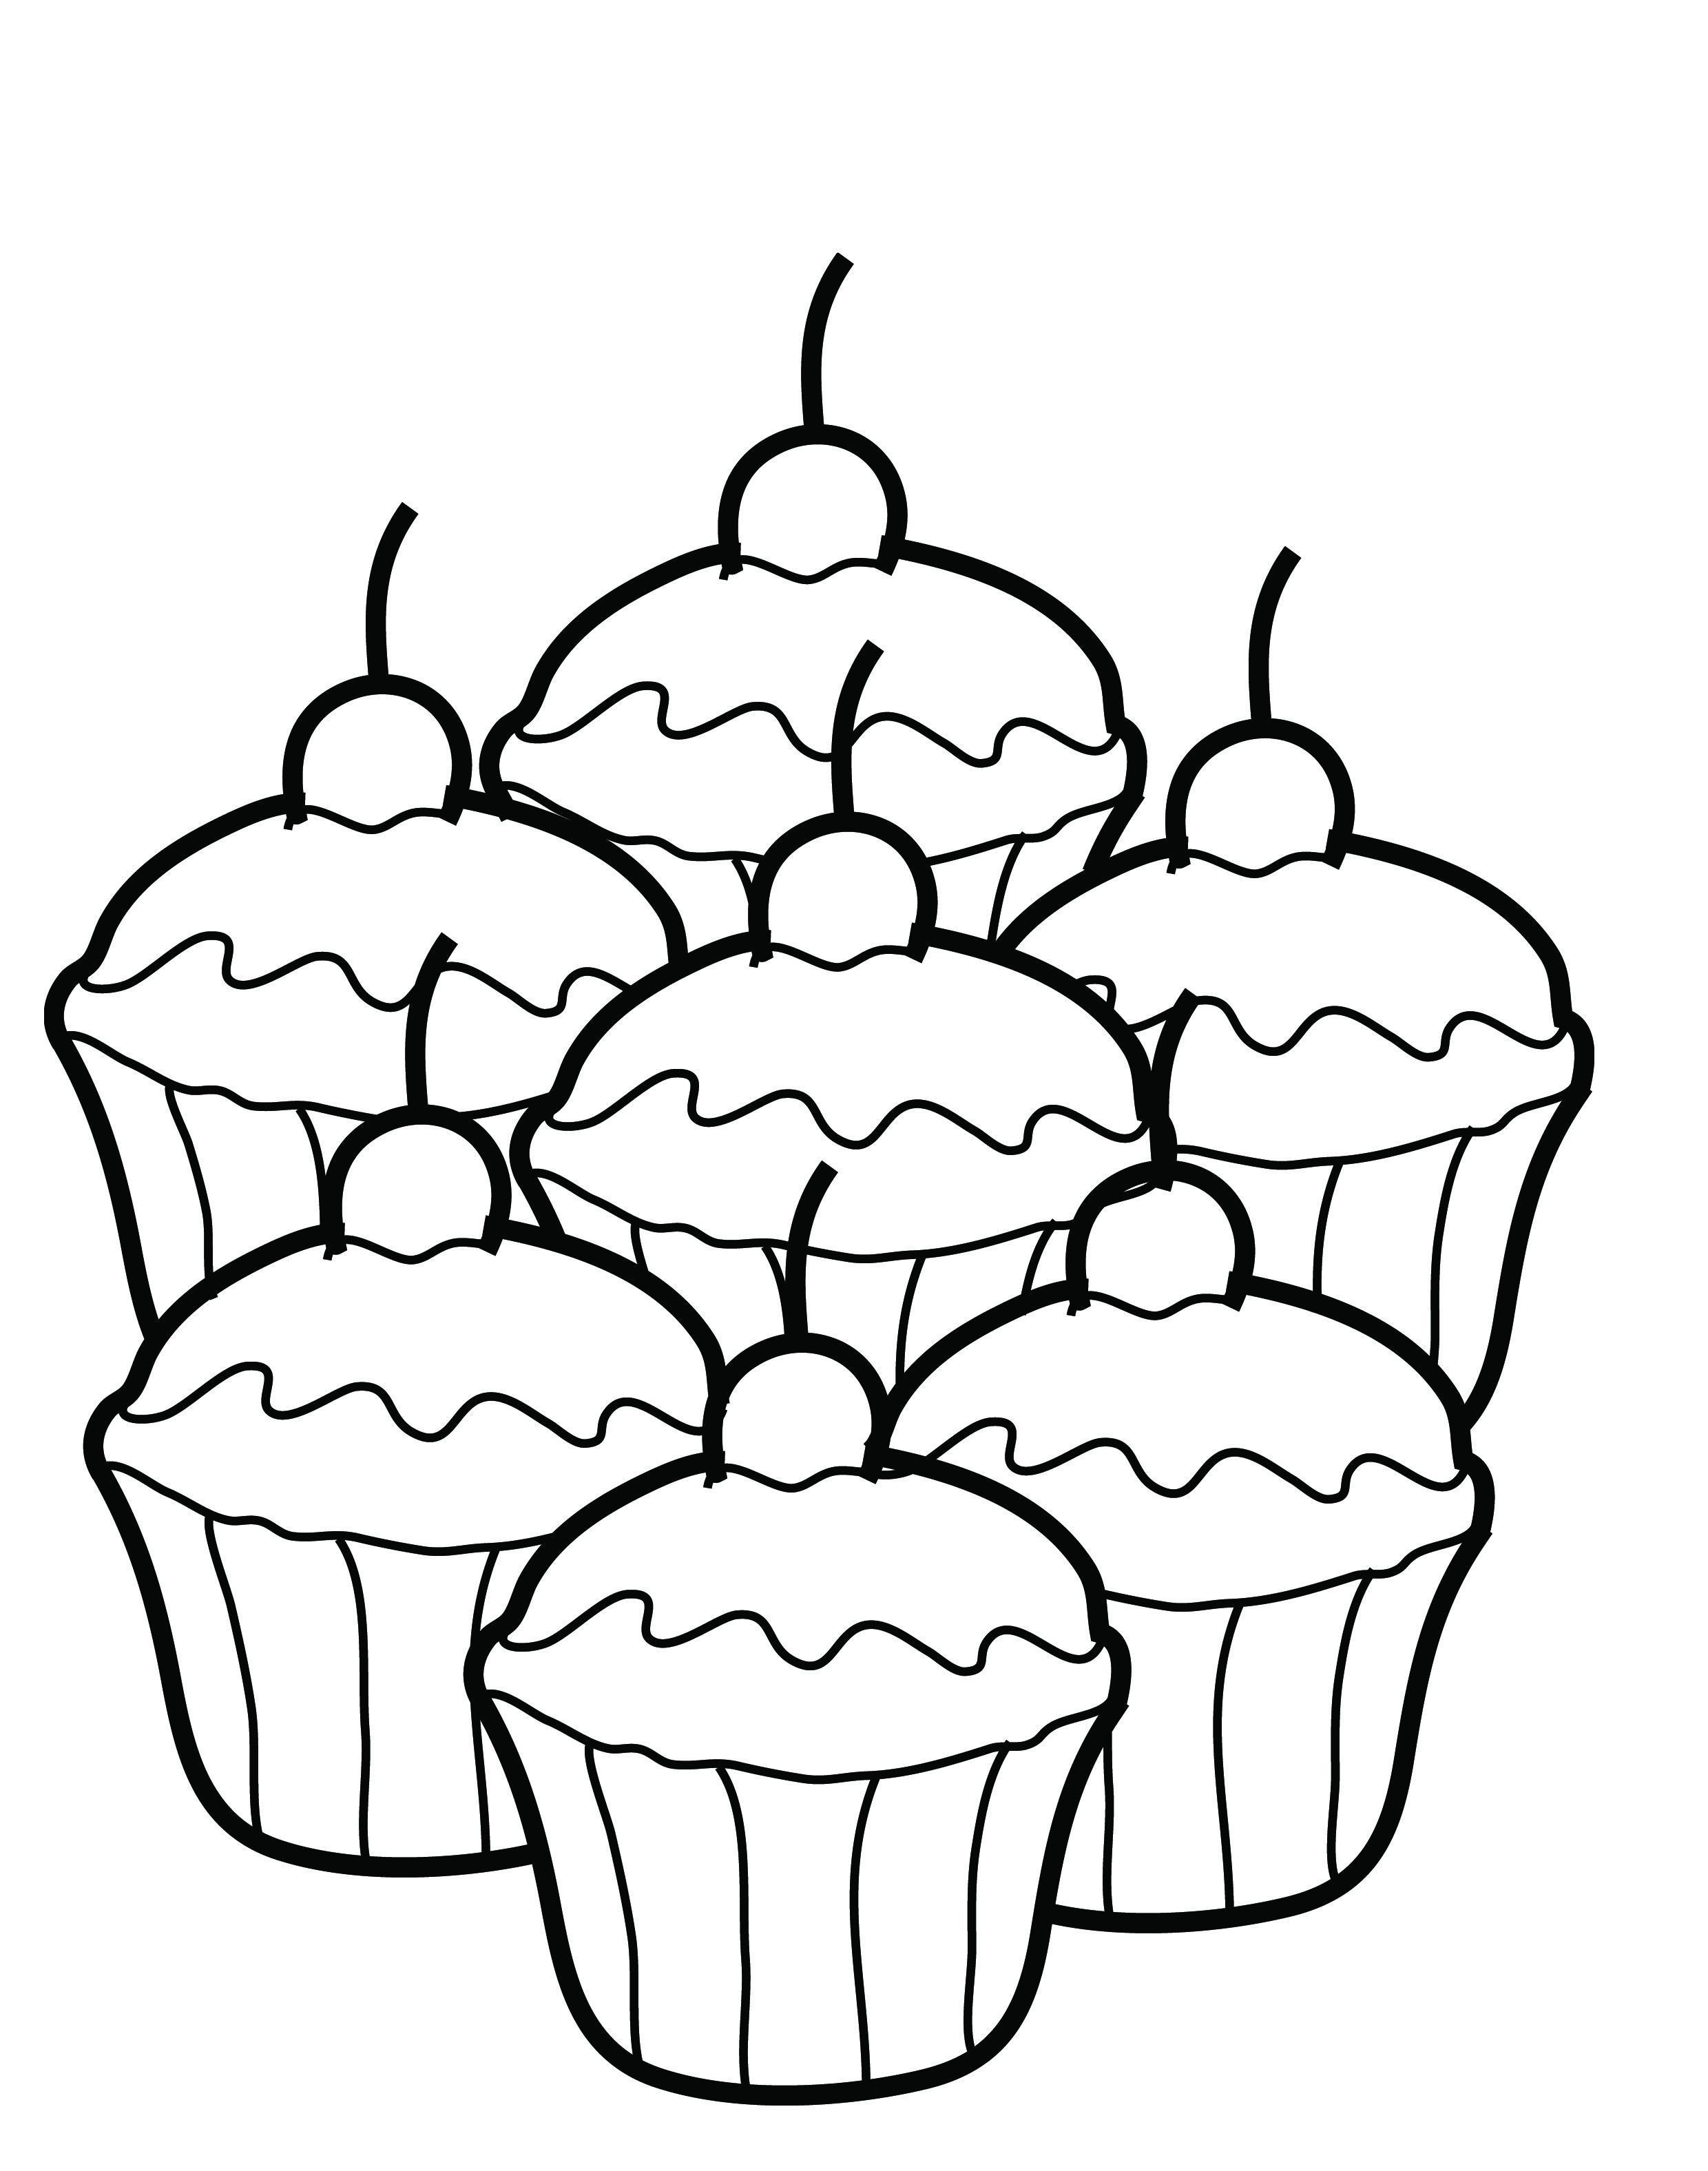 Uncategorized Coloring Ages free printable cupcake coloring pages for kids kids